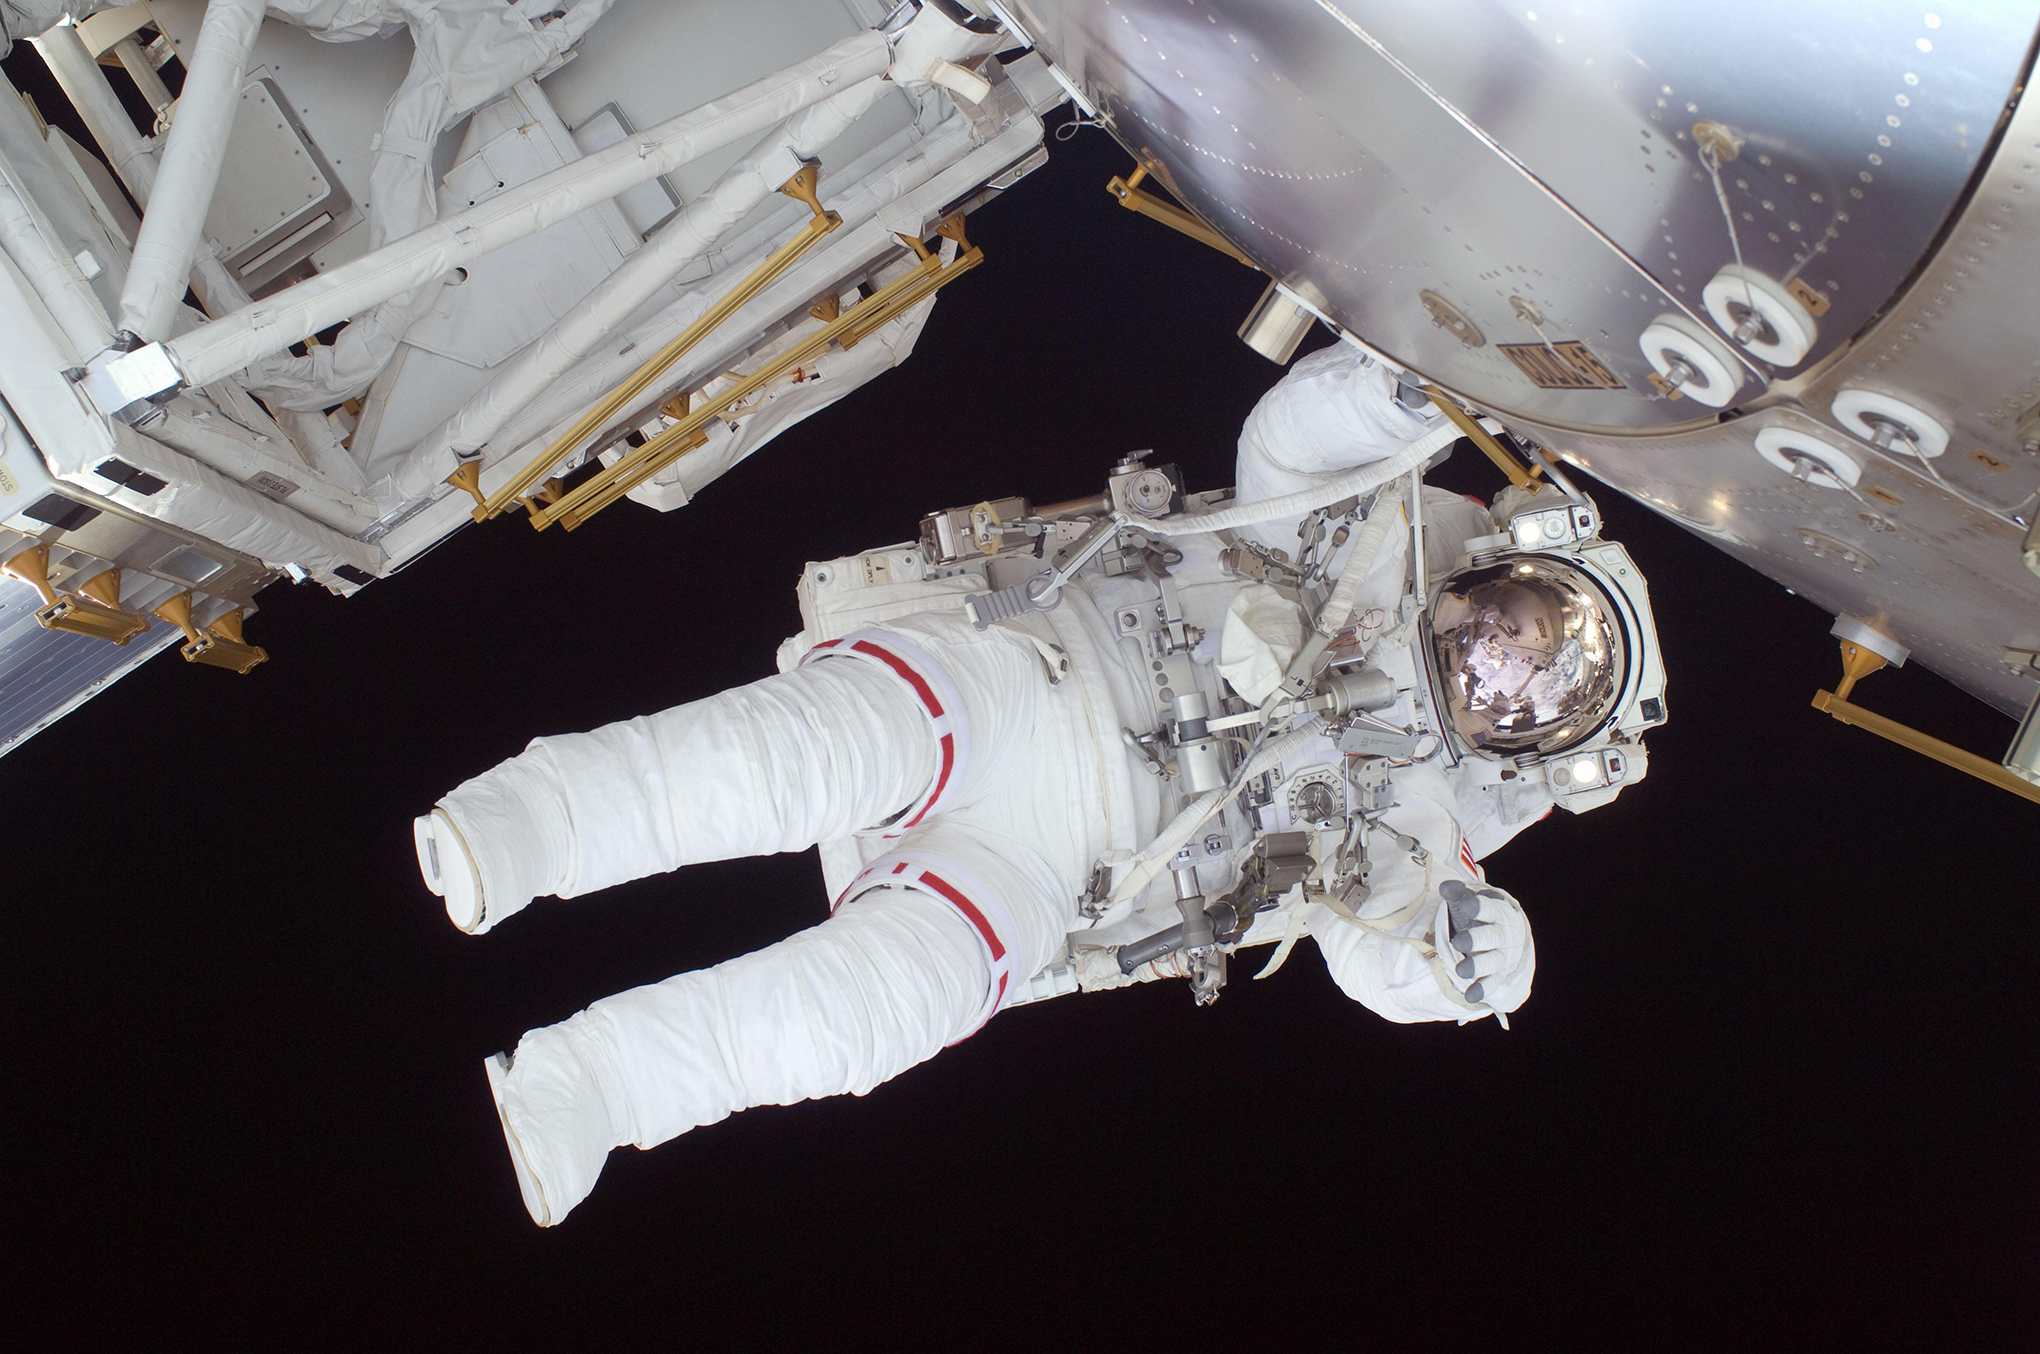 Expedition 20 flight engineer Nicole Stott participates in the STS-128 mission's first spacewalk as construction and maintenance continue on the International Space Station in 2009.